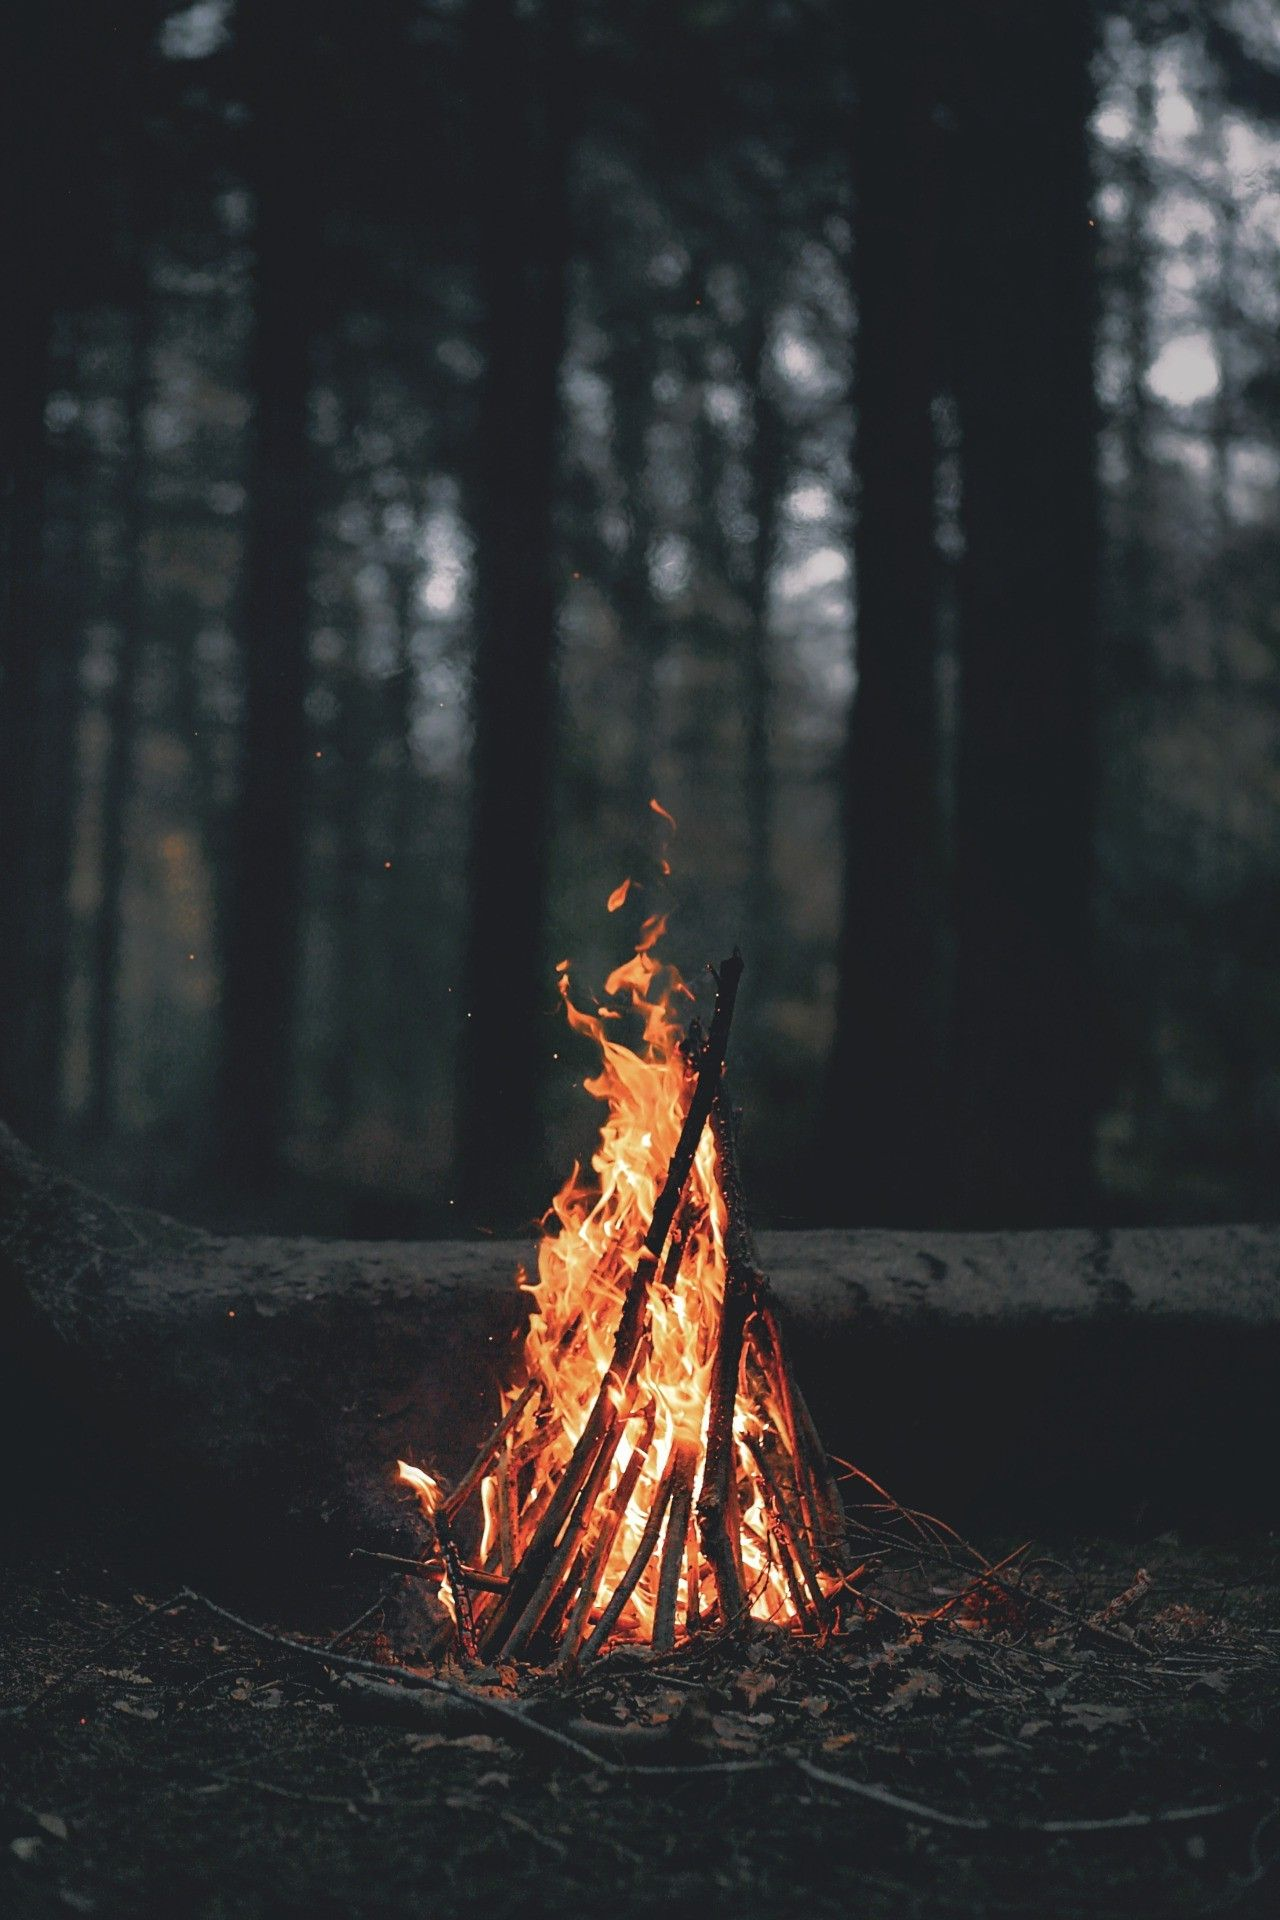 Portrait Display Nature Trees Forest Fire Wood Leaves Dark Evening Branch Bonfires Wallpaper Nature Photography Camping Photography Nature